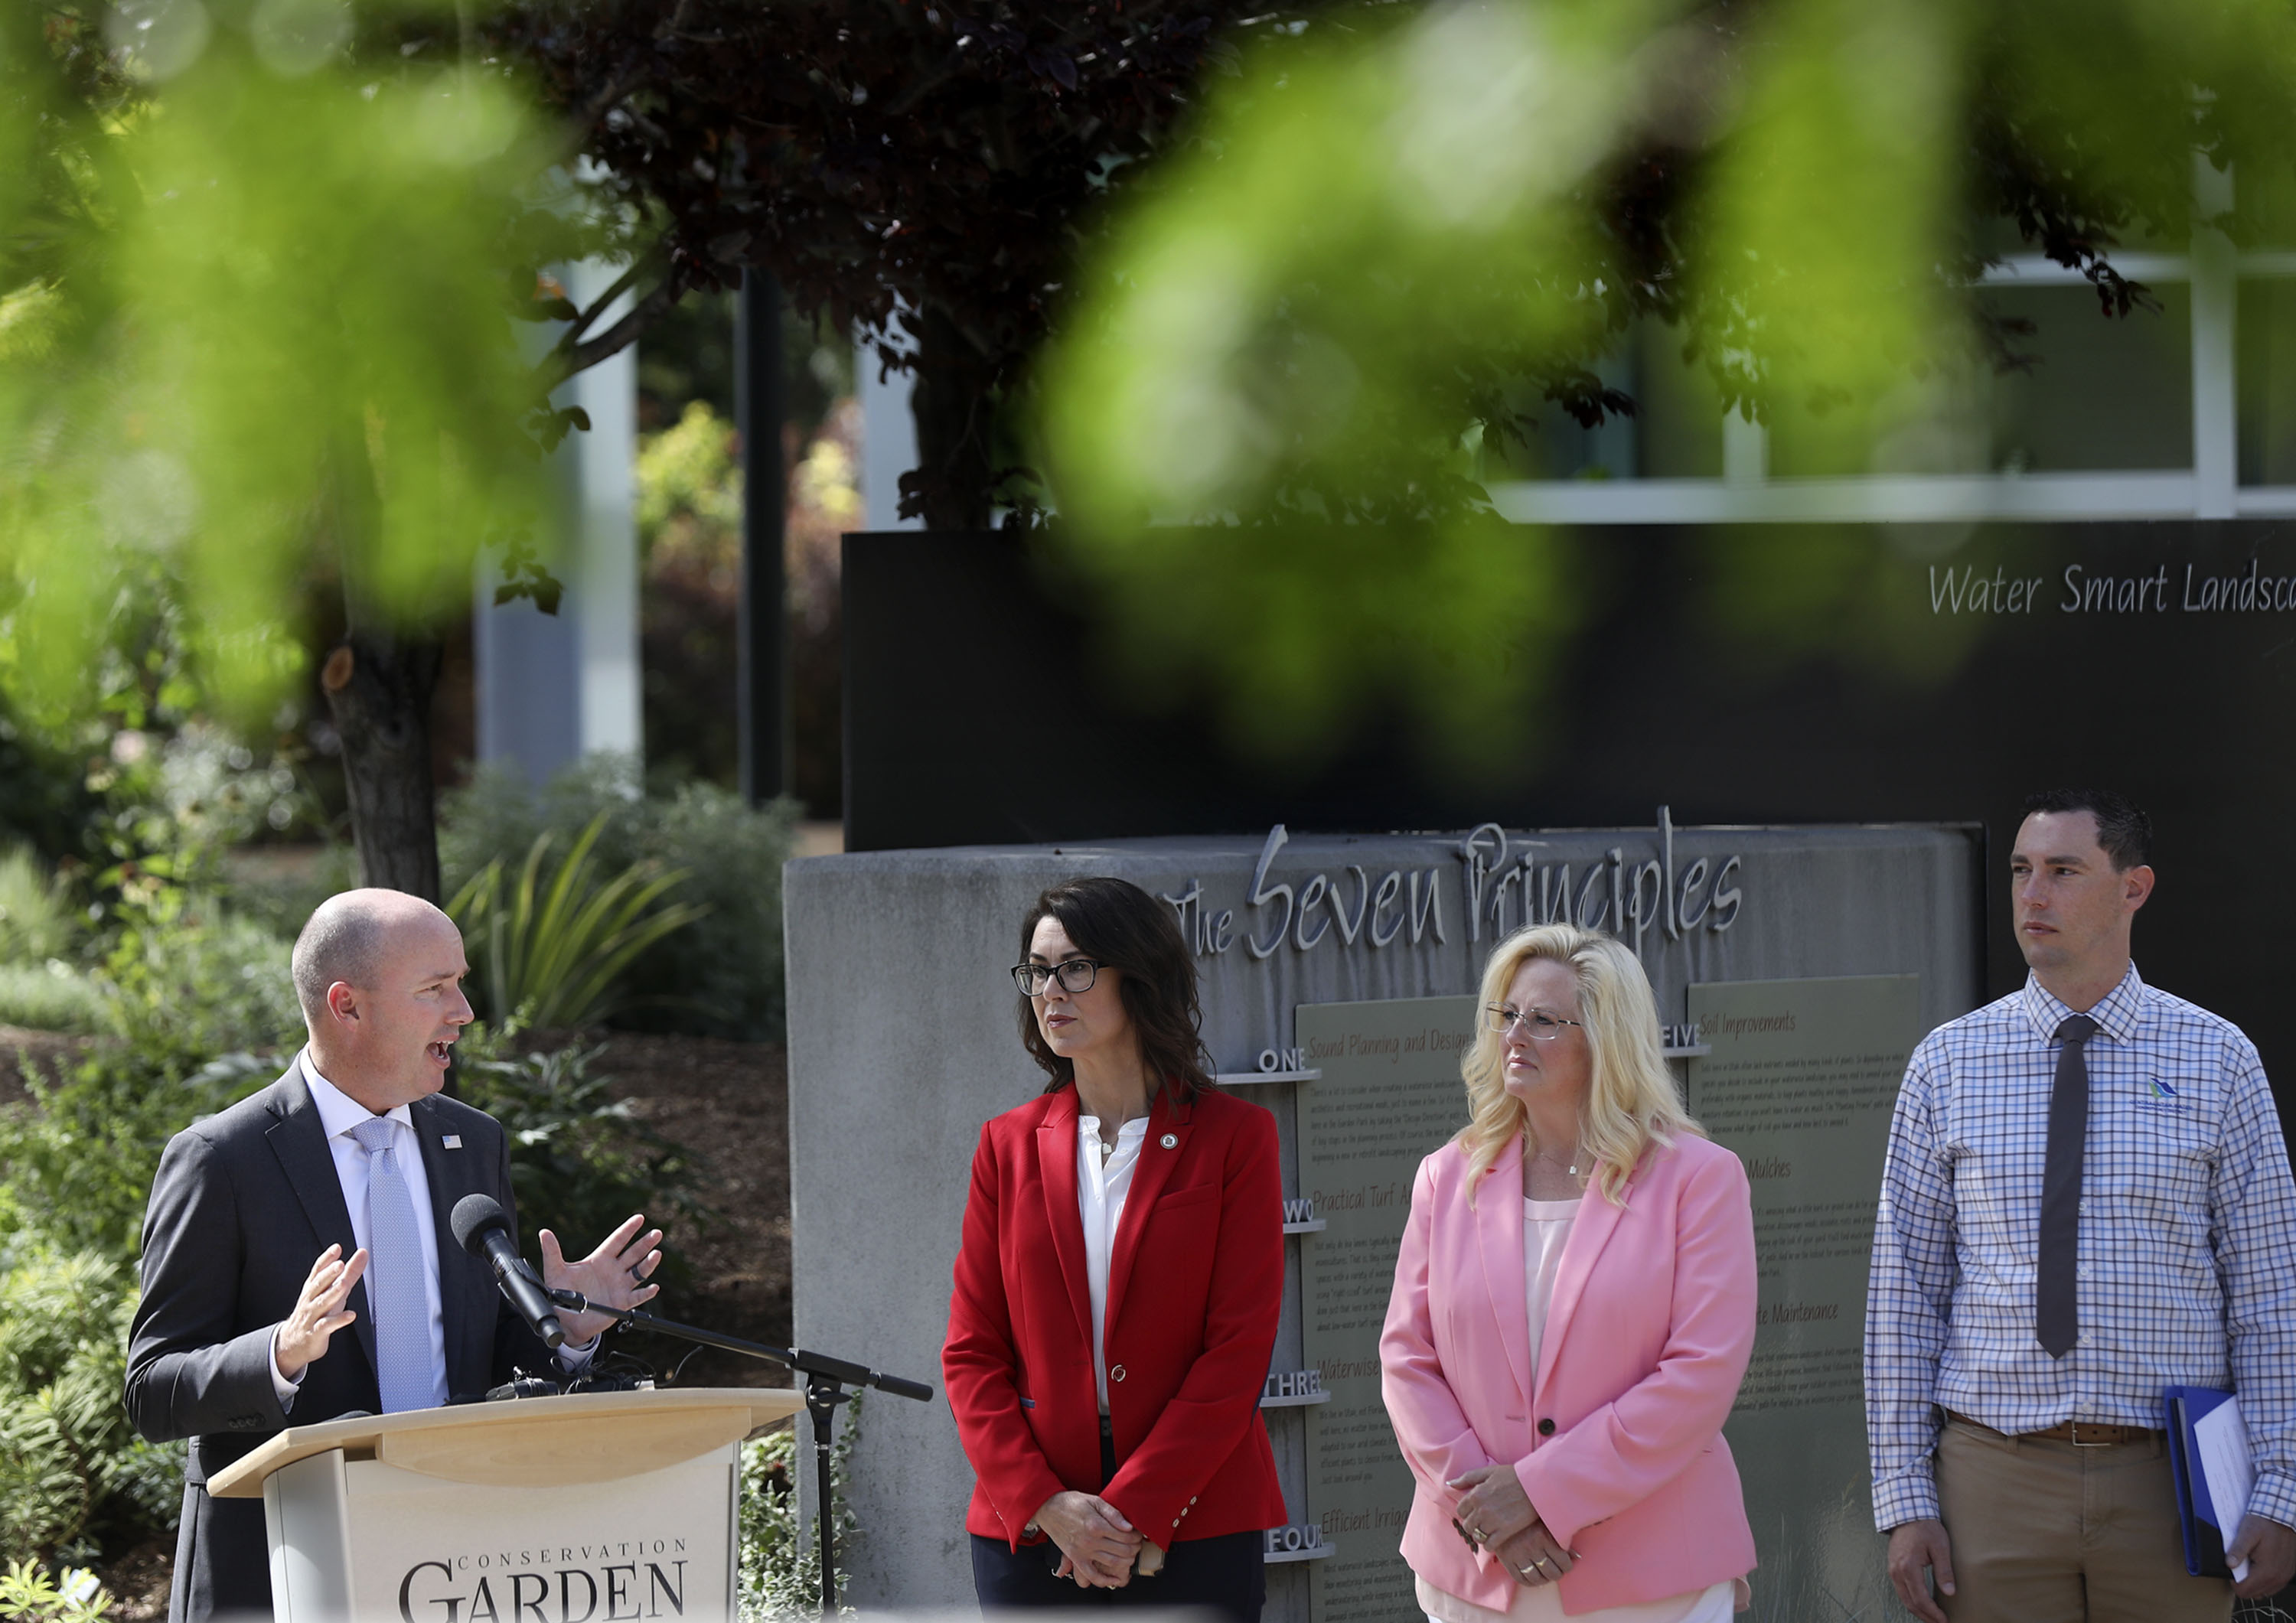 Gov. Spencer Cox speaks about water conservation as Lt. Gov. Deidre Henderson, South Jordan Mayor Dawn Ramsey and Central Utah Water Conservation District manager Rick Maloy participate in a press conference.